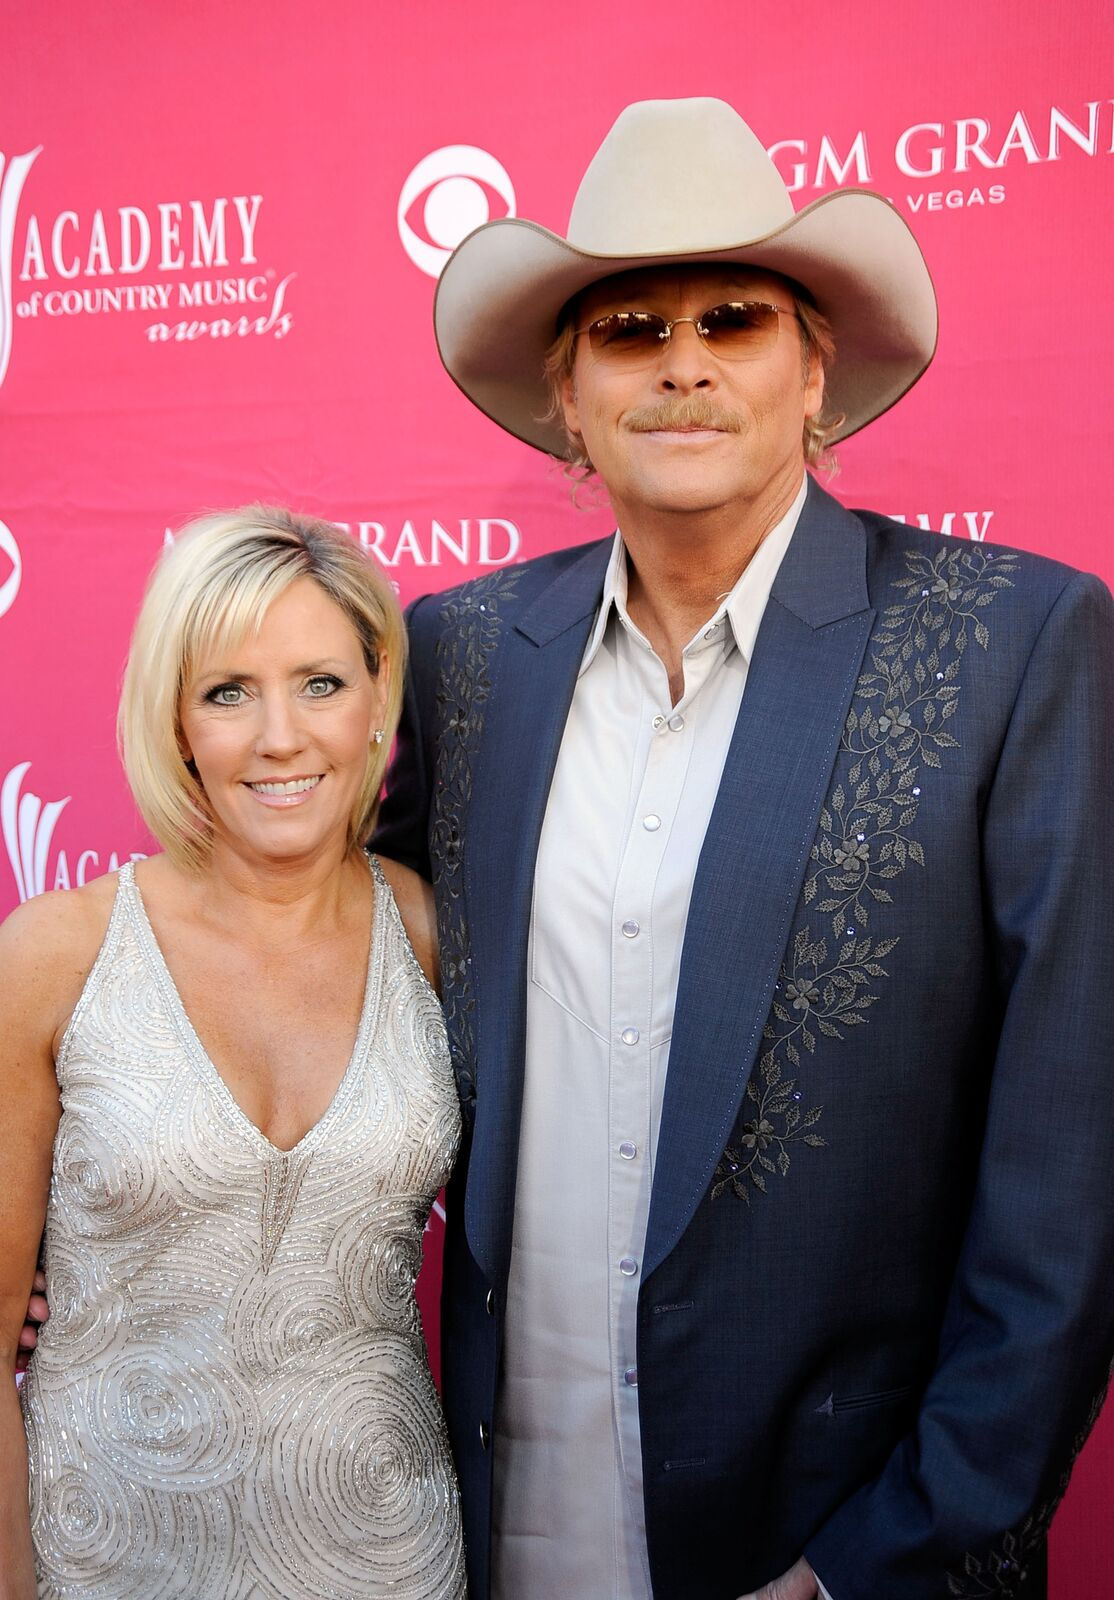 Denise Jackson and musician Alan Jackson arrives on the red carpet at the 44th annual Academy Of Country Music Awards held at the MGM Grand on April 5, 2009 in Las Vegas, Nevada | Photo: Getty Images